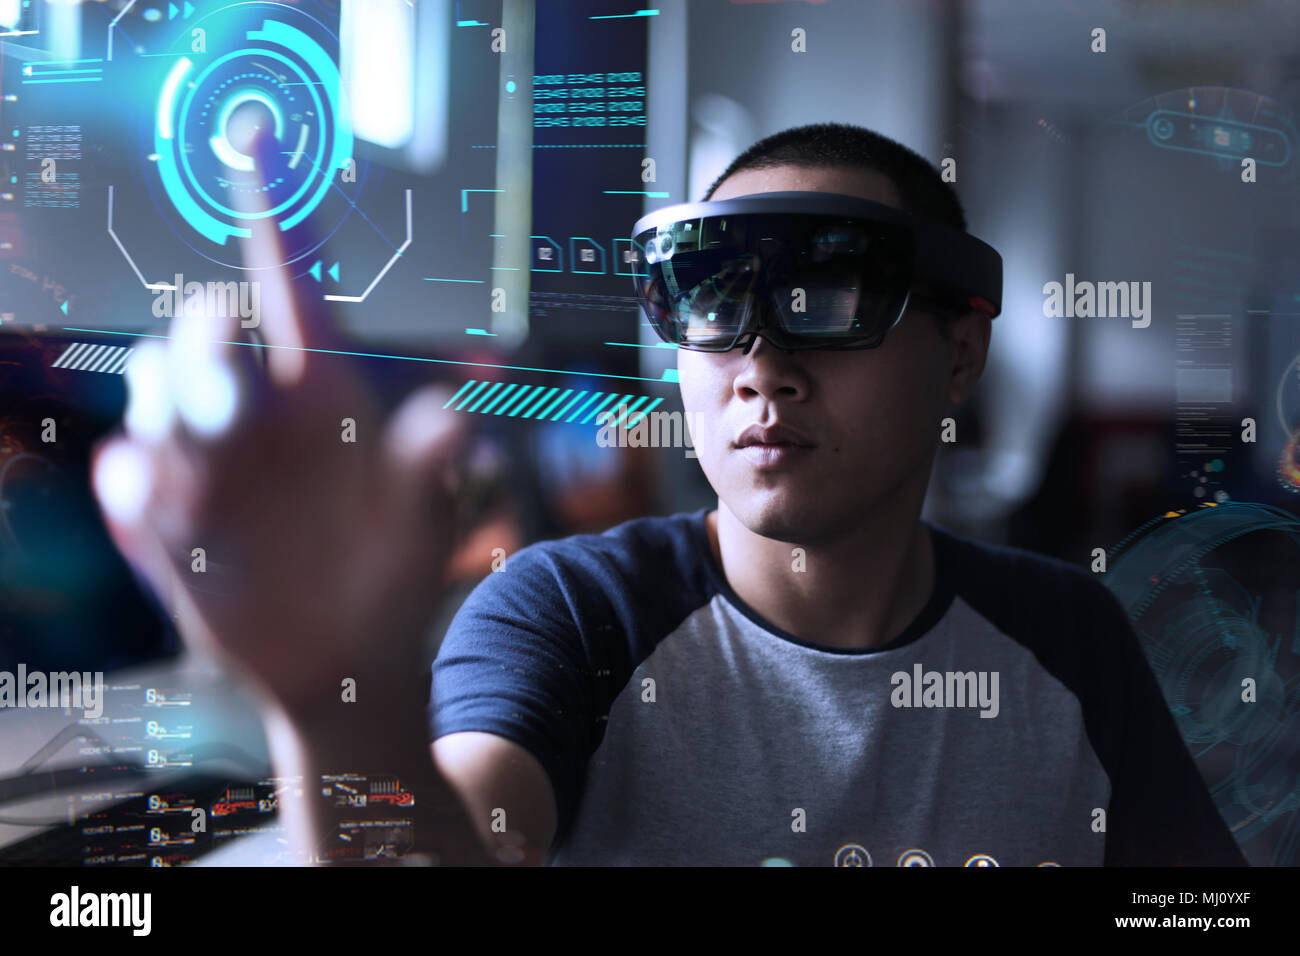 Playing magic | Virtual reality with hololens in the lab - Stock Image